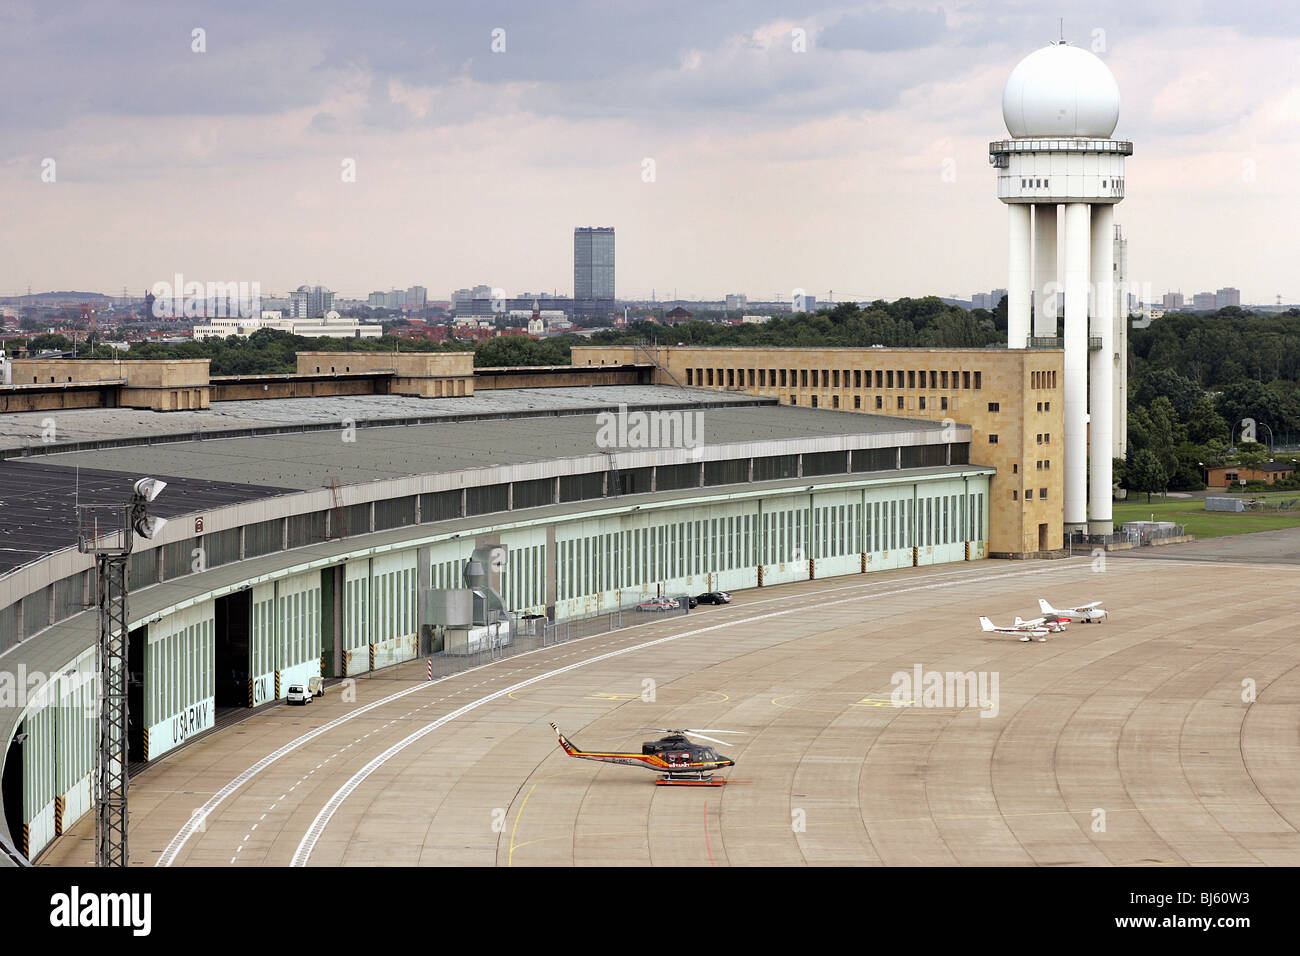 Tempelhof Airport Berlin Germany Stock Photo Royalty